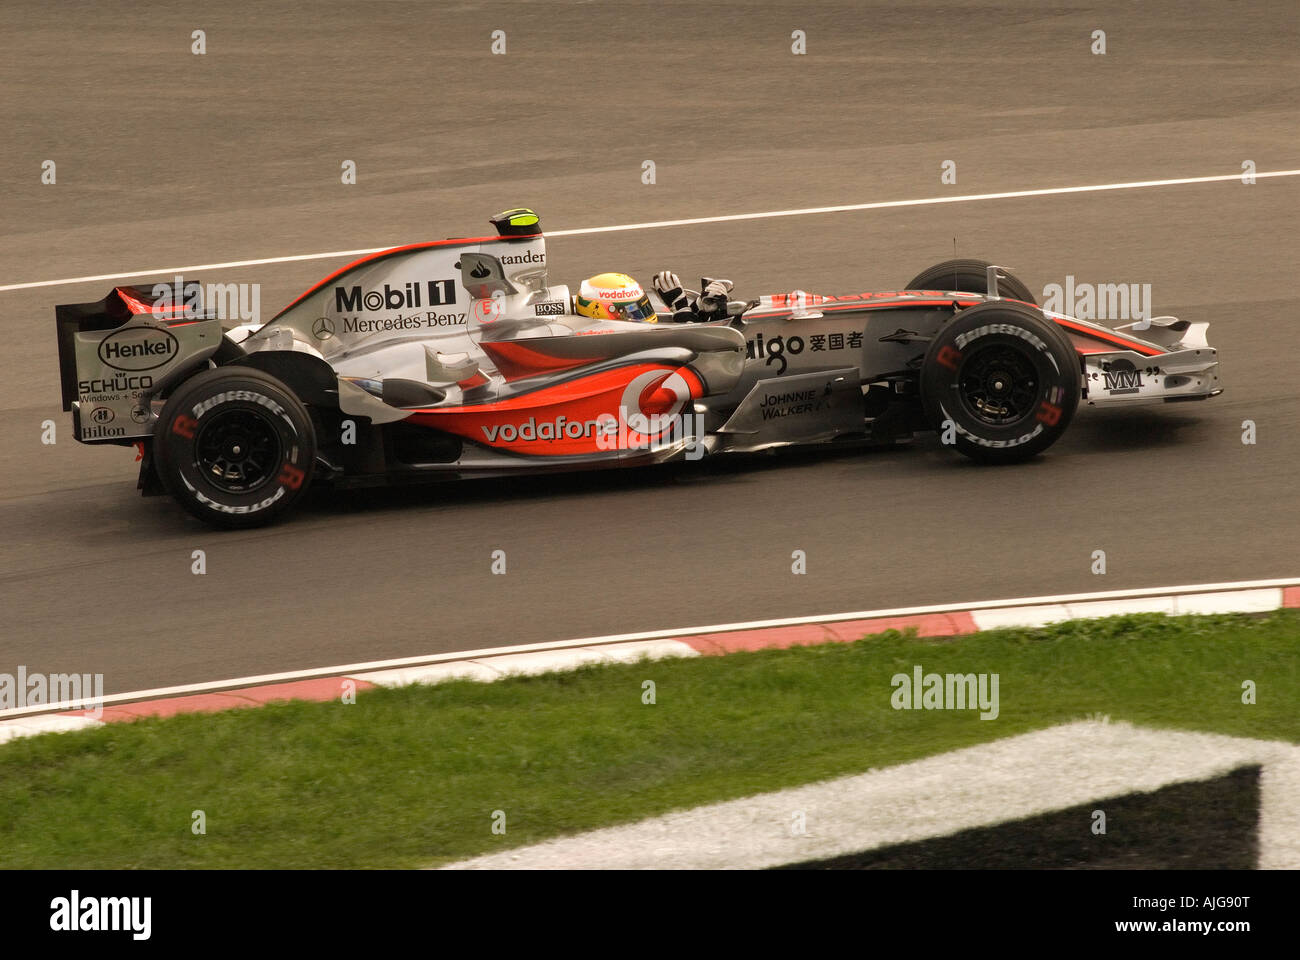 Formula 1 race car driver Lewis Hamilon from the UK at the Montreal 2007 Grand Prix June 08th/2007. - Stock Image